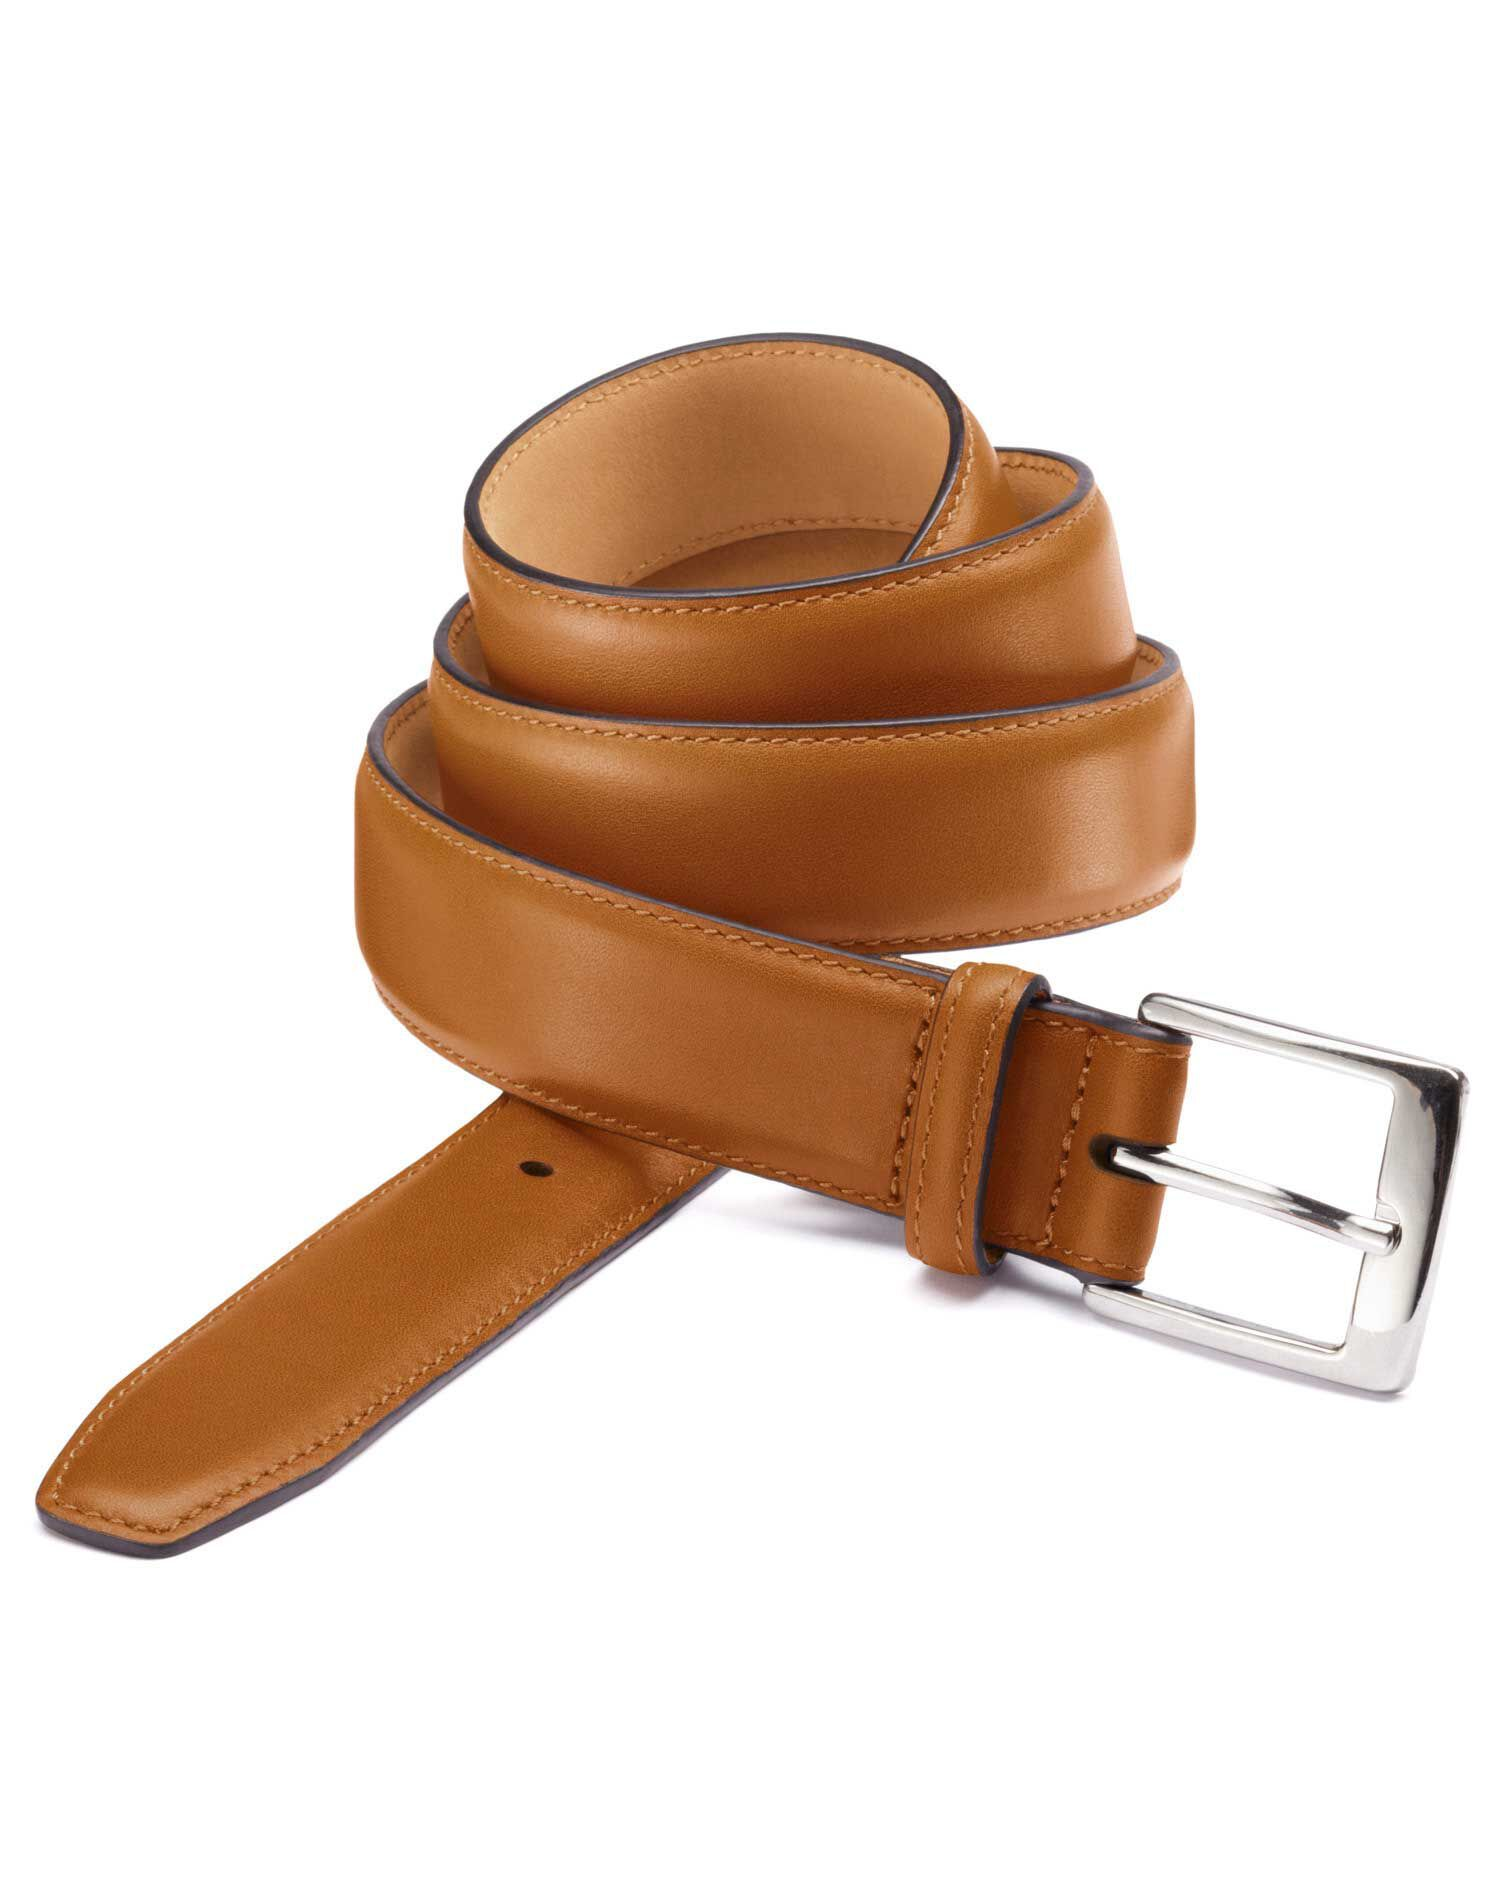 Tan Leather Formal Belt Size 46-48 by Charles Tyrwhitt